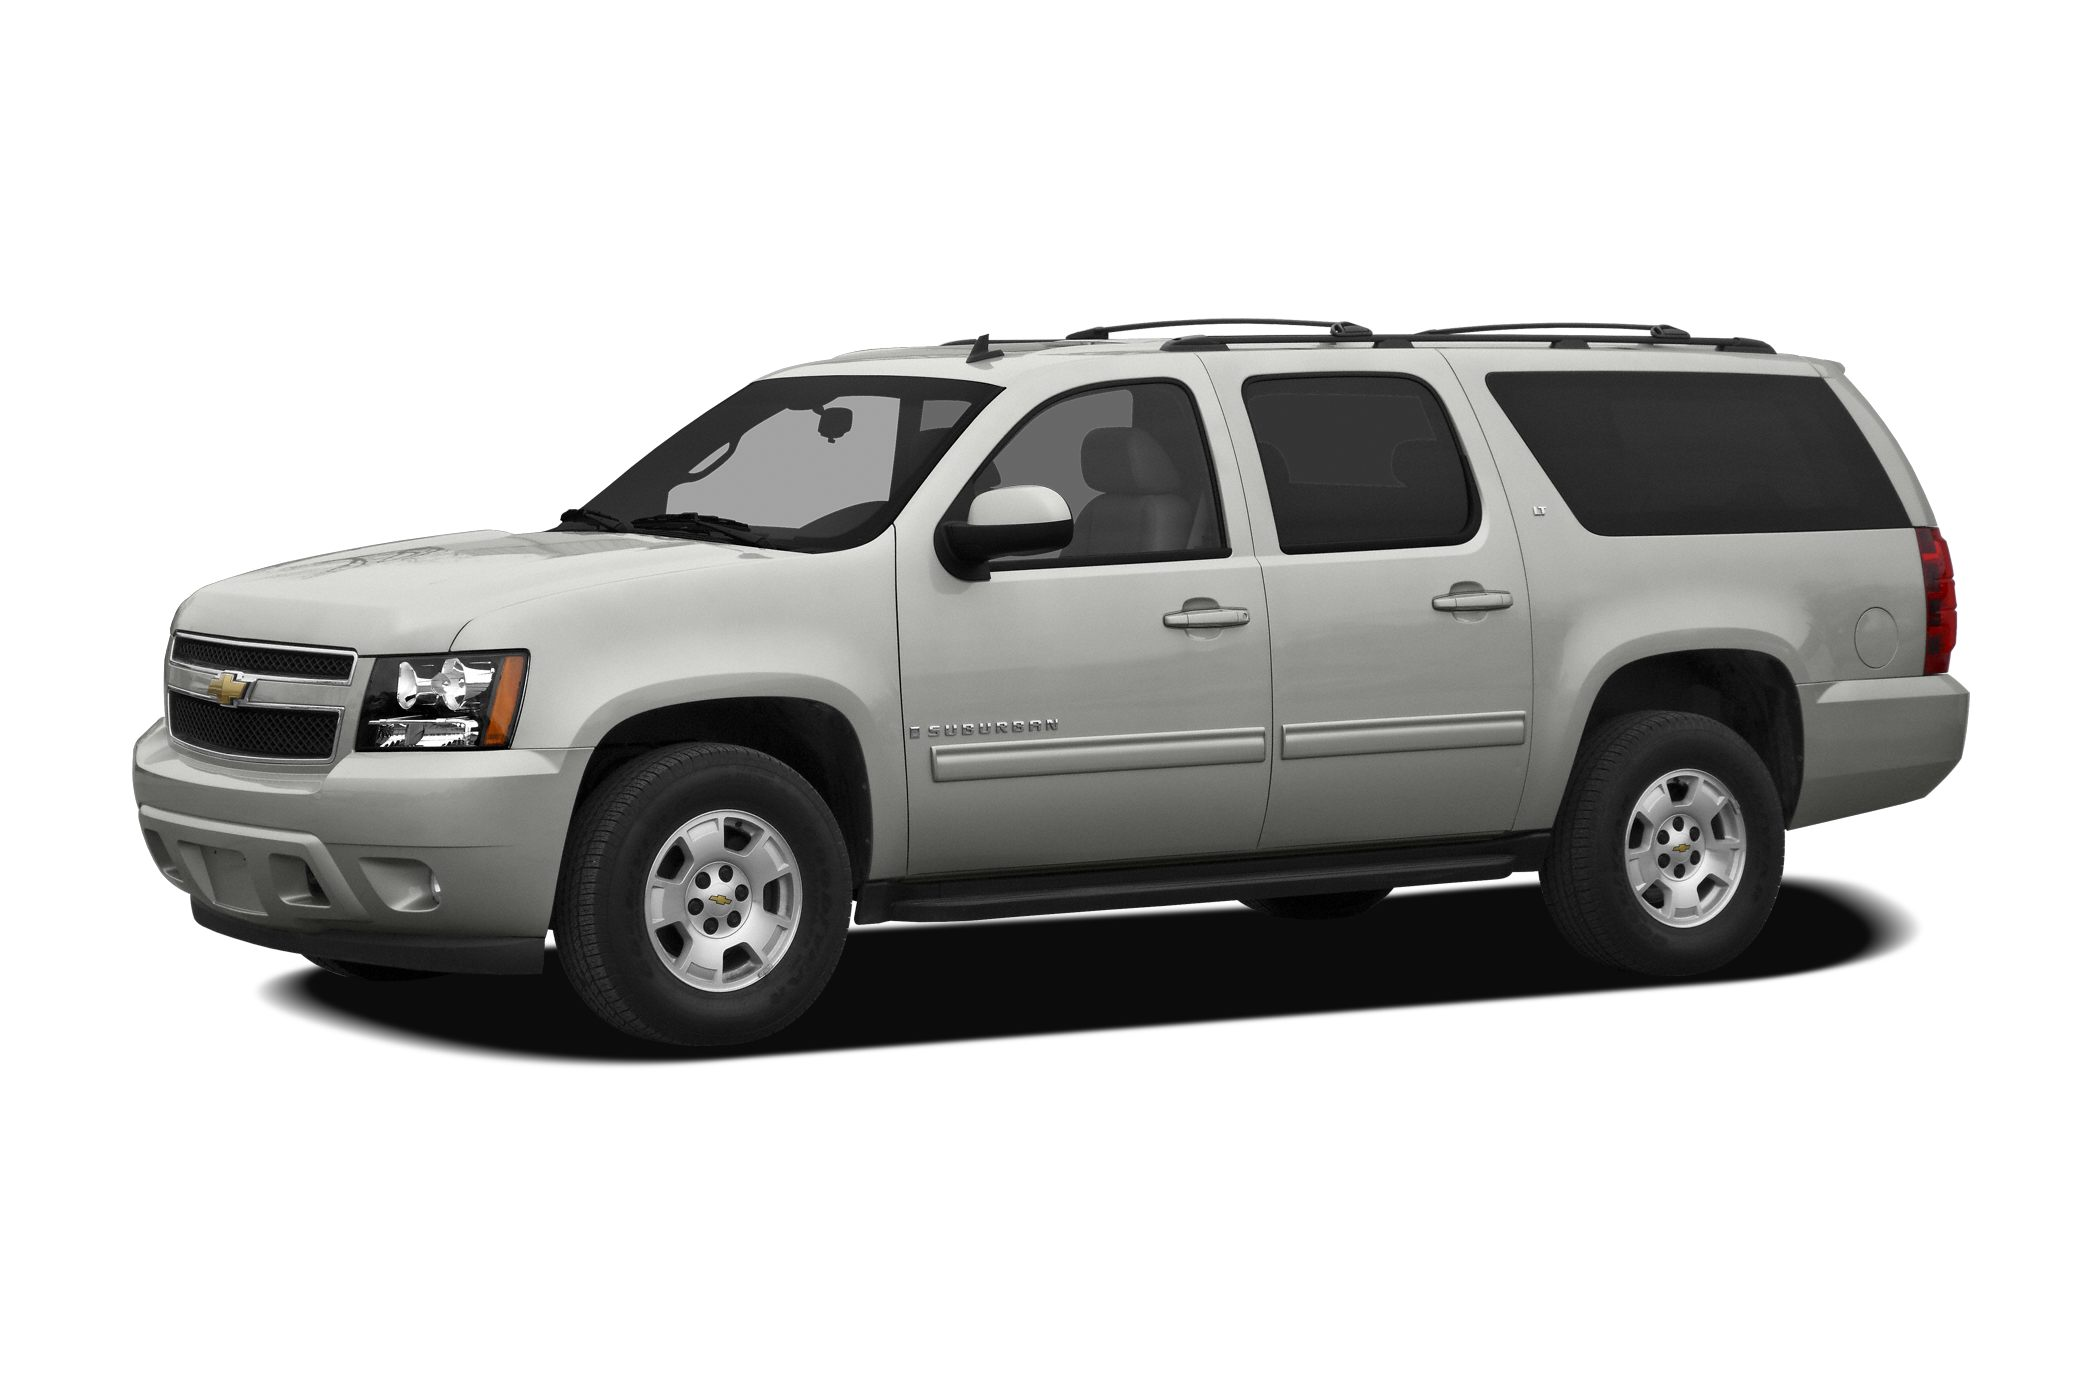 2012 Chevrolet Suburban 1500 LTZ For information on this vehicle pleasecontact Teresa in the Inter